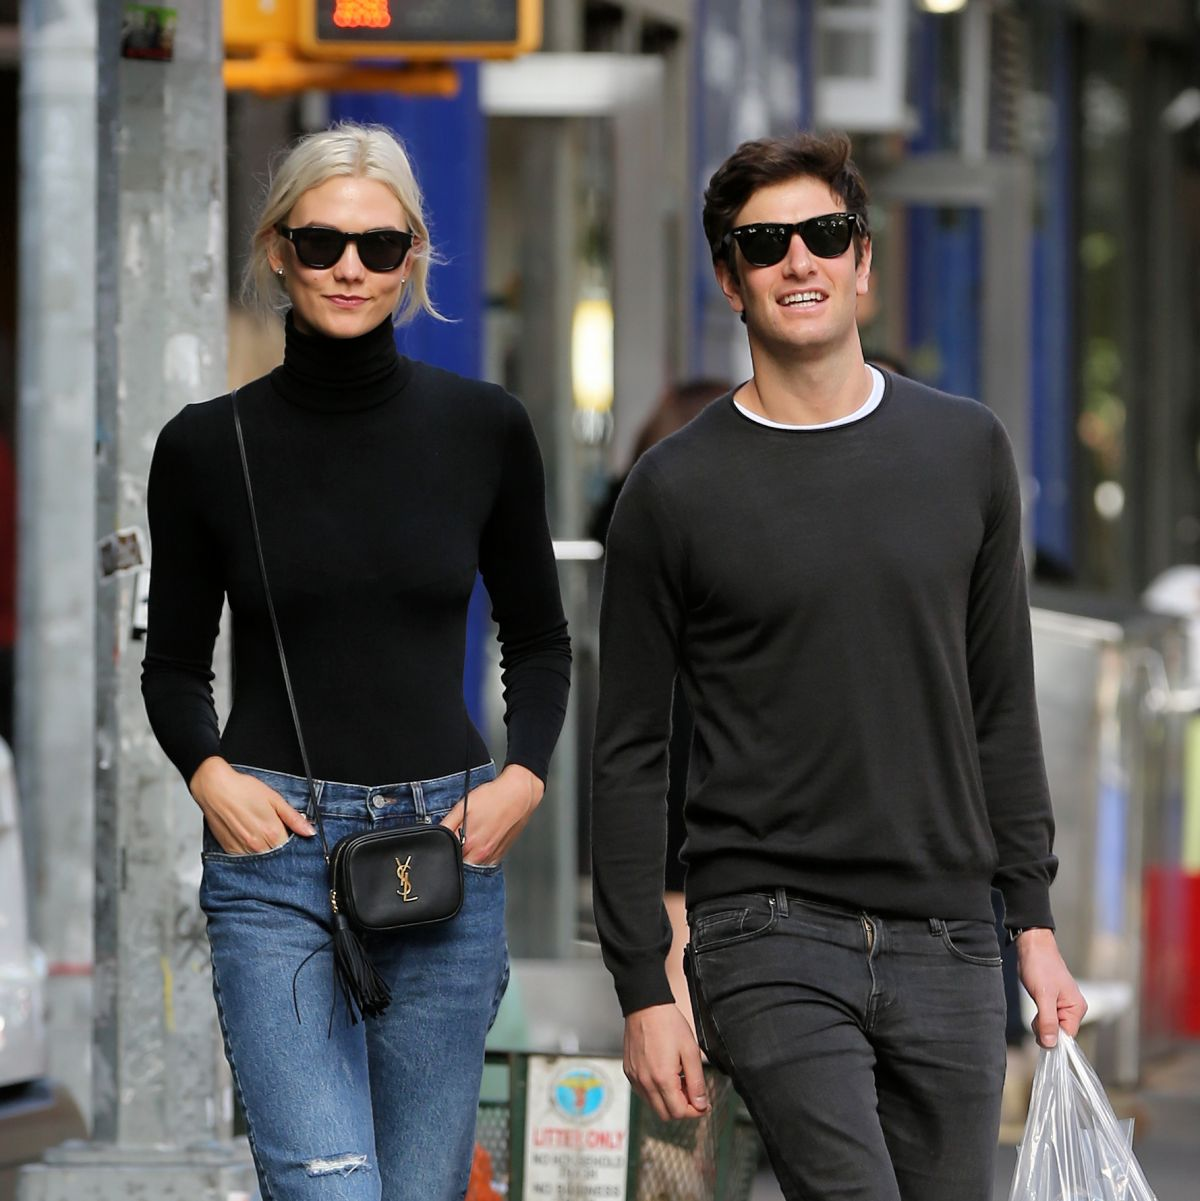 Karlie Kloss Walks home with Joshua Kushner in West Village in NYC